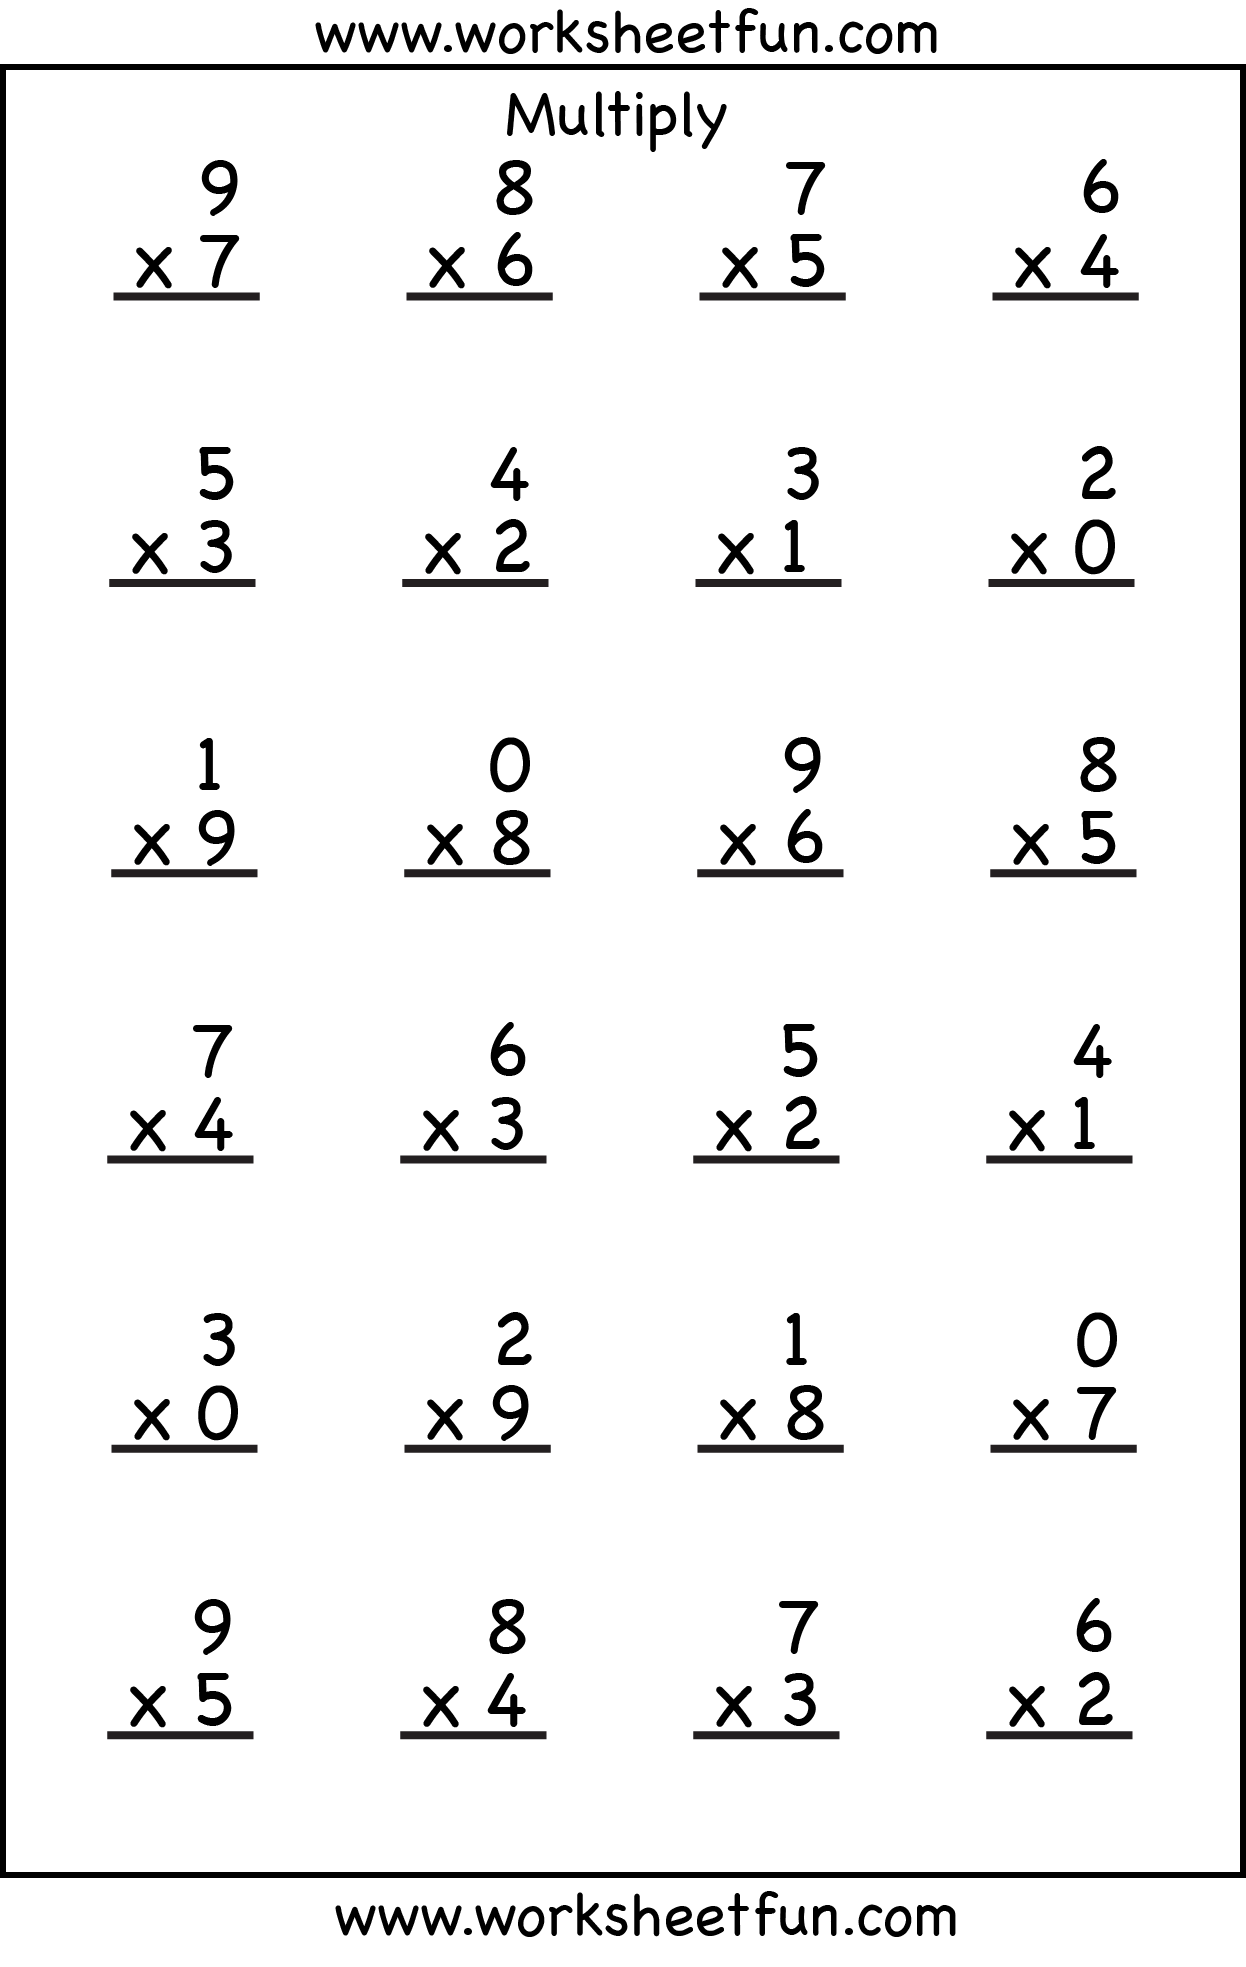 Fun Multiplication And Division Worksheets Fact Families – 4 Digit Multiplication Worksheets